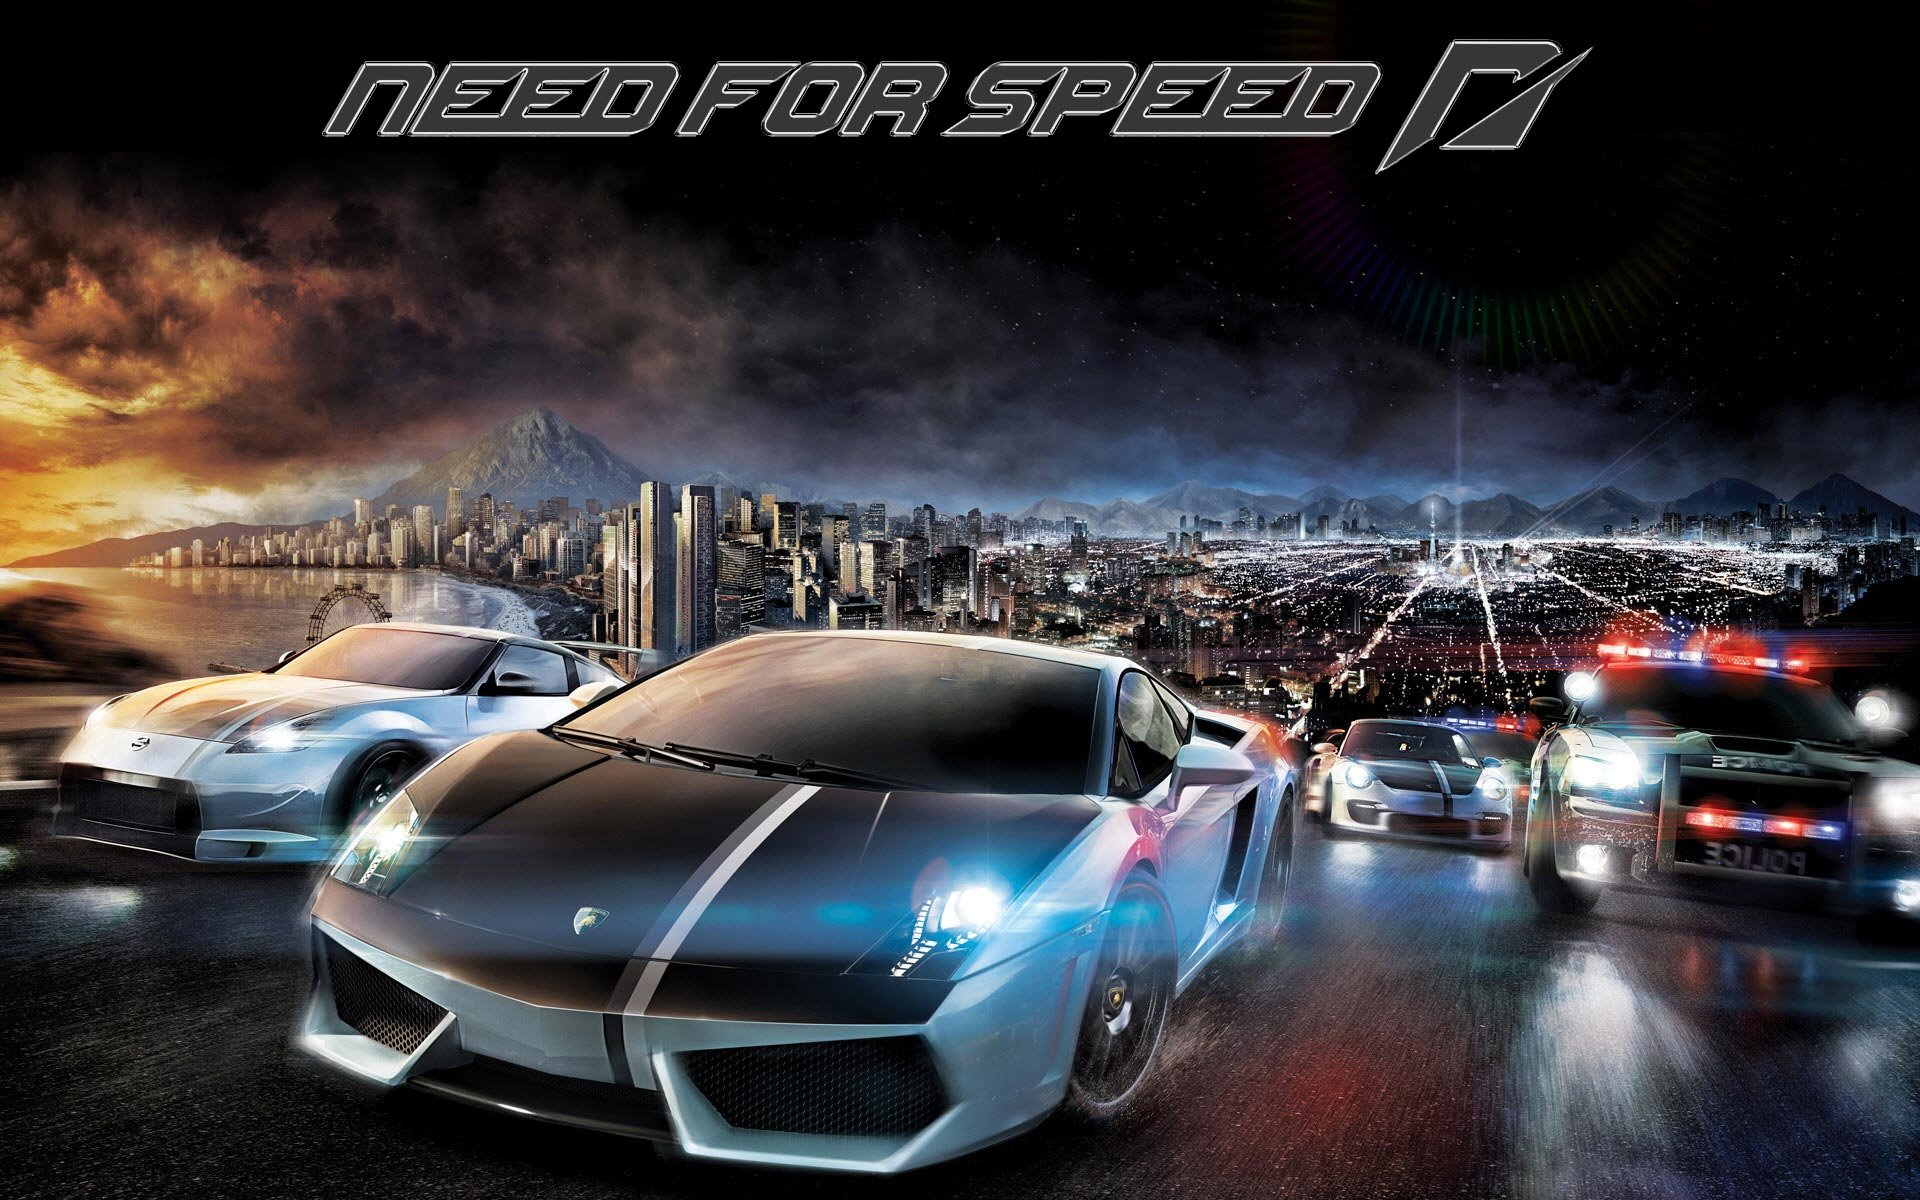 Need For Speed Action Police Race Racing Lamborghini Supercar